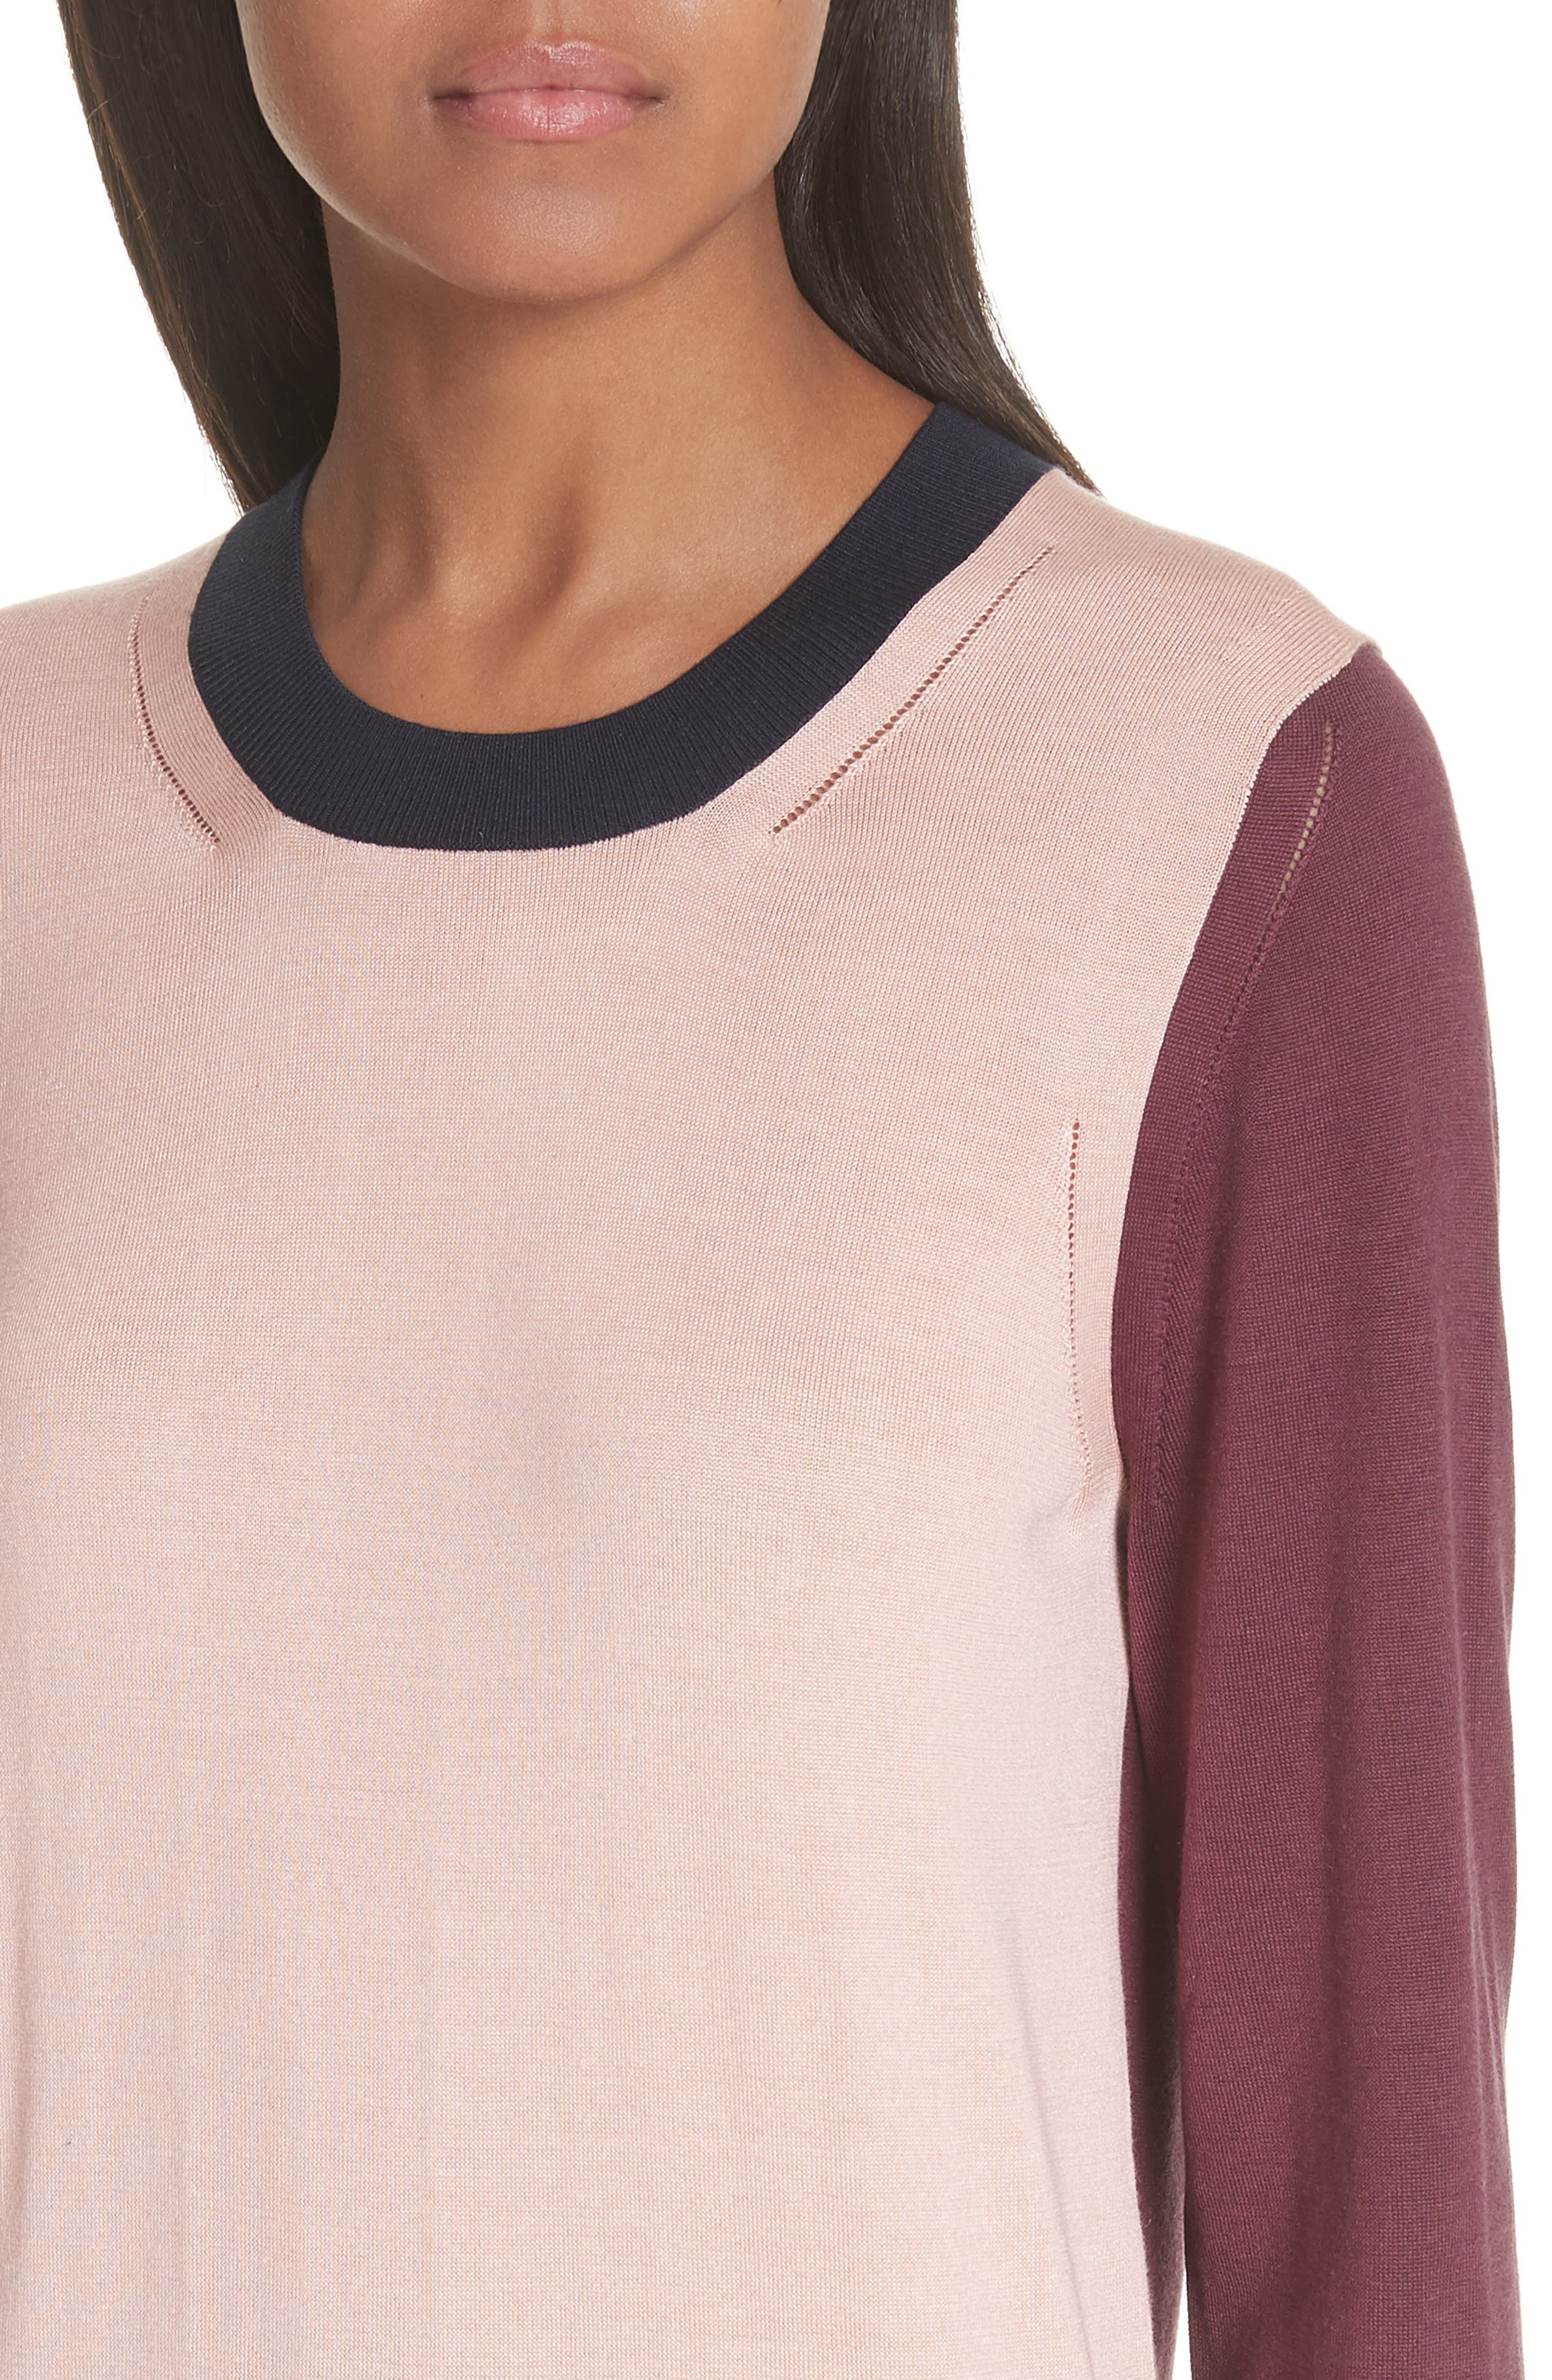 Buck 57 Silk & Cashmere Sweater,                             Alternate thumbnail 4, color,                             Pink Apricot